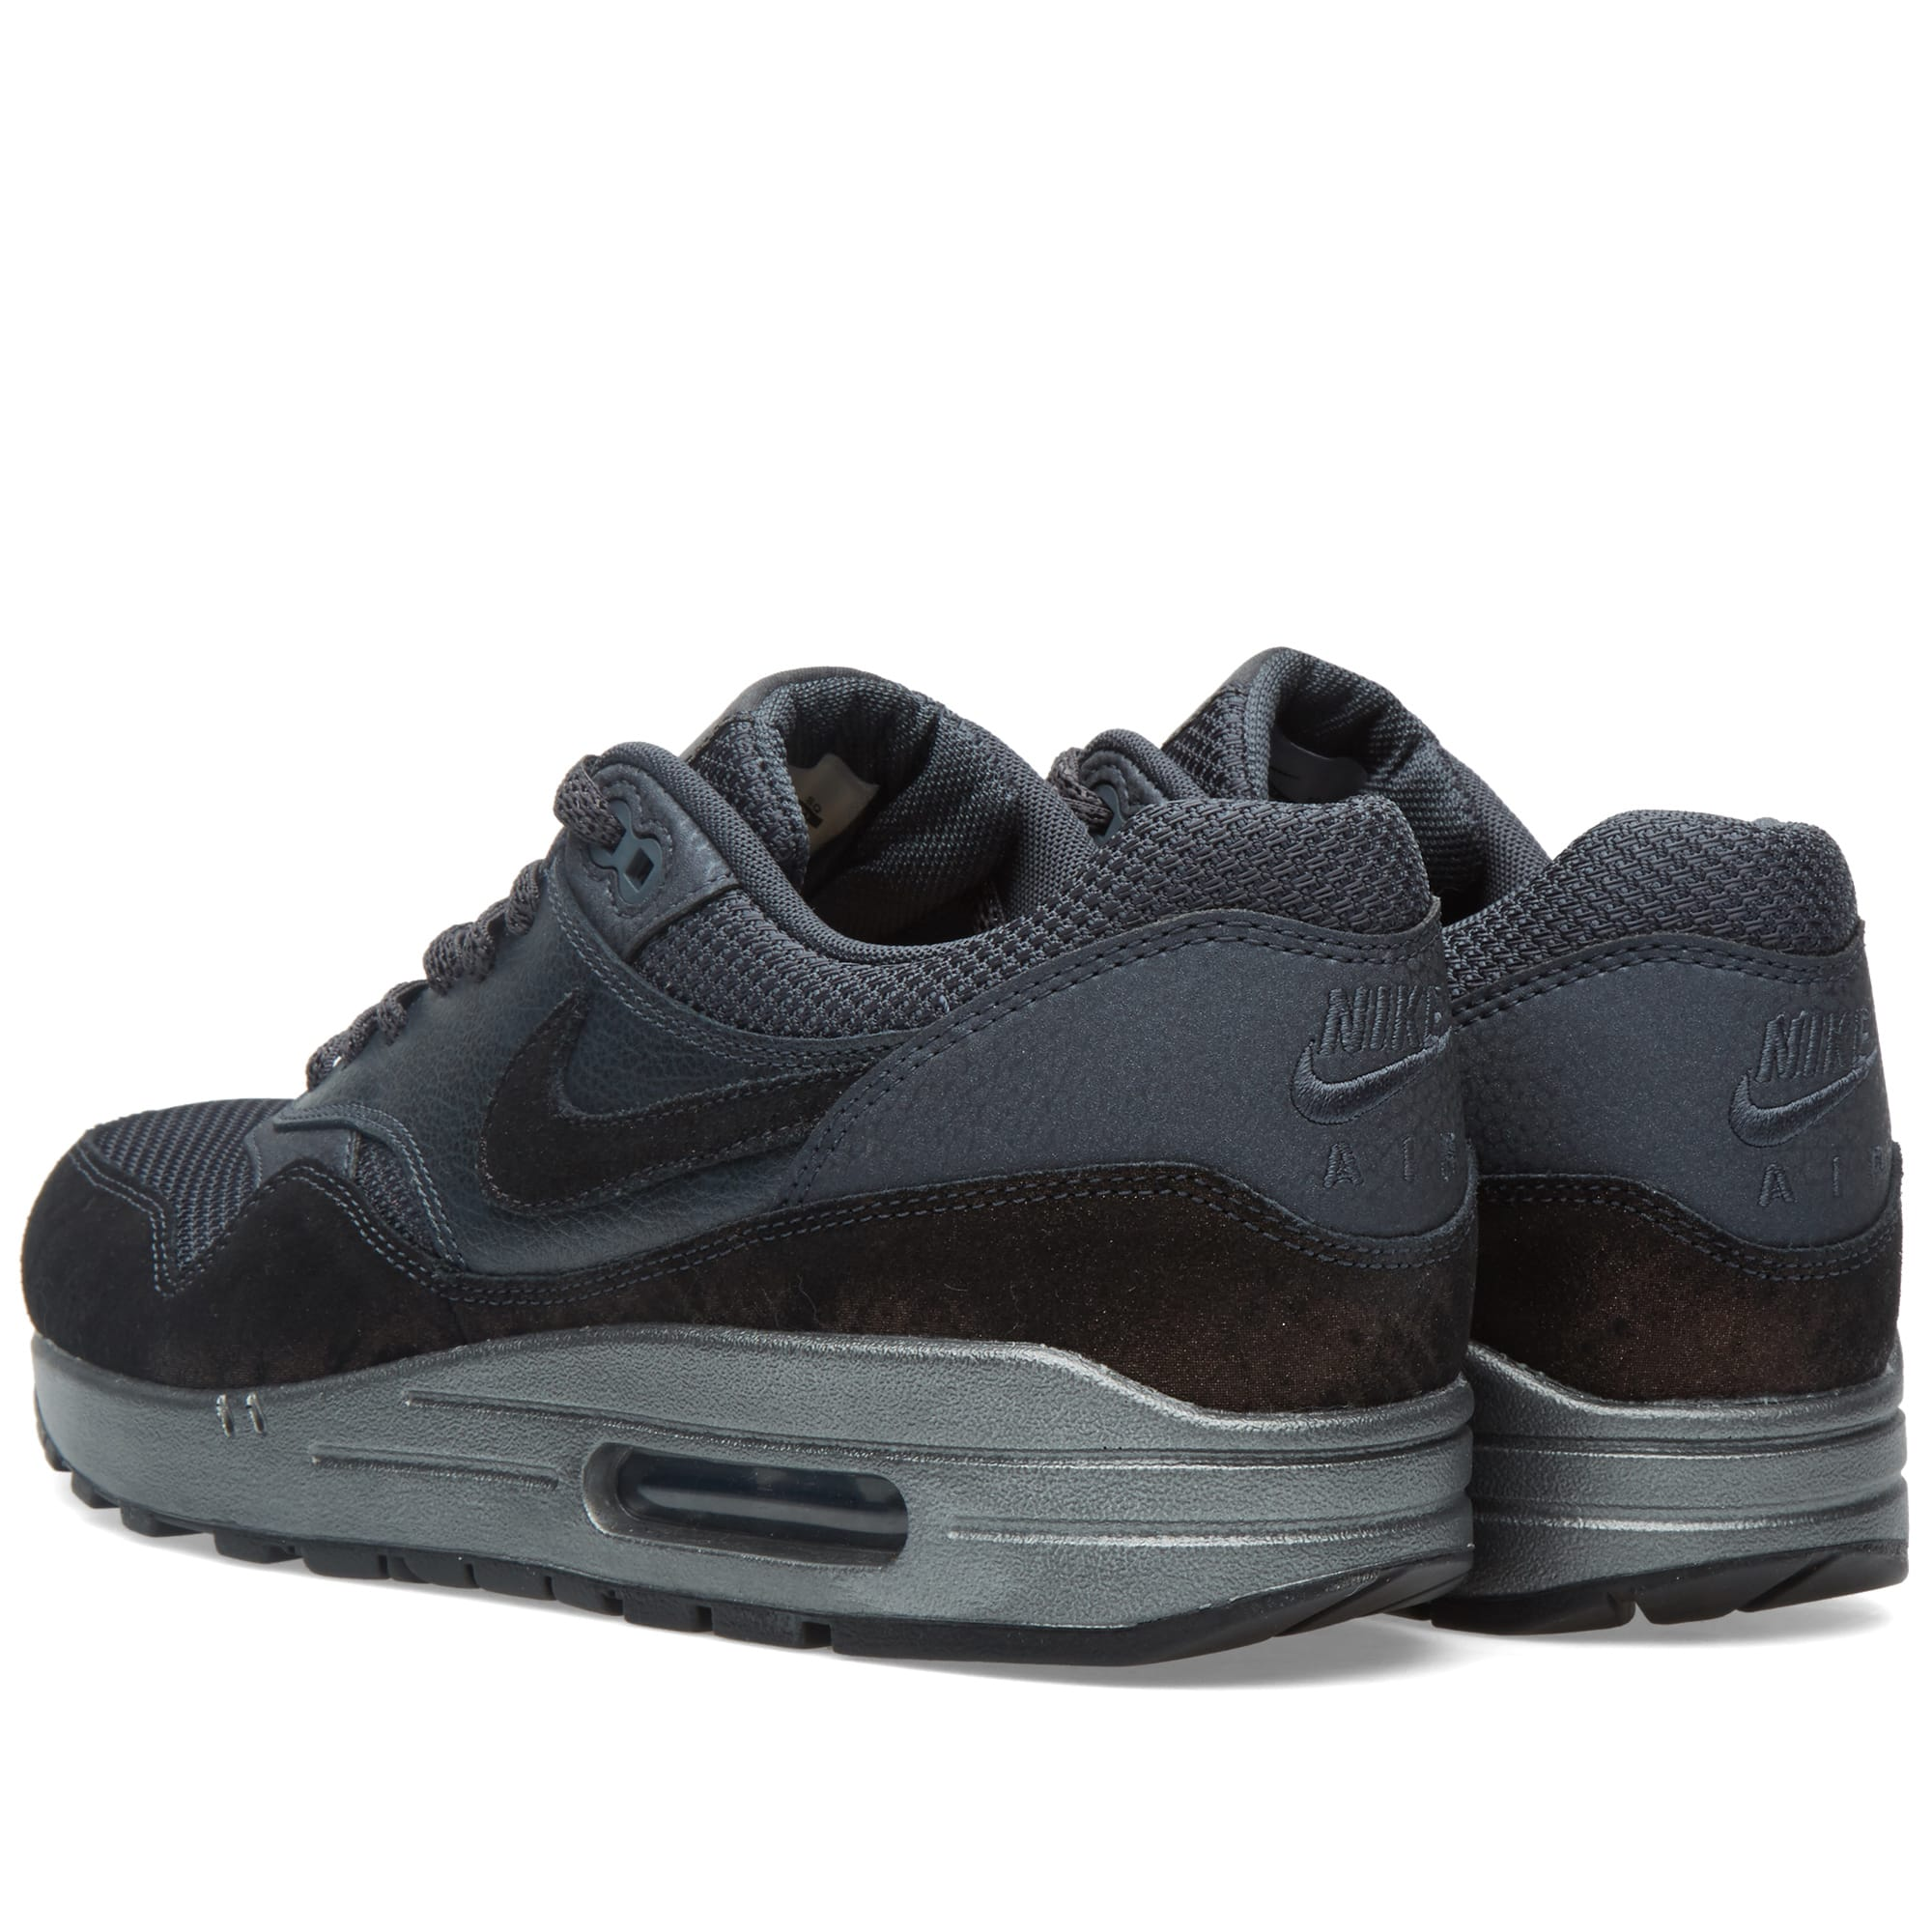 low priced 29a63 aee9a Nike W Air Max 1 Premium Anthracite   Metallic Hematite   END.